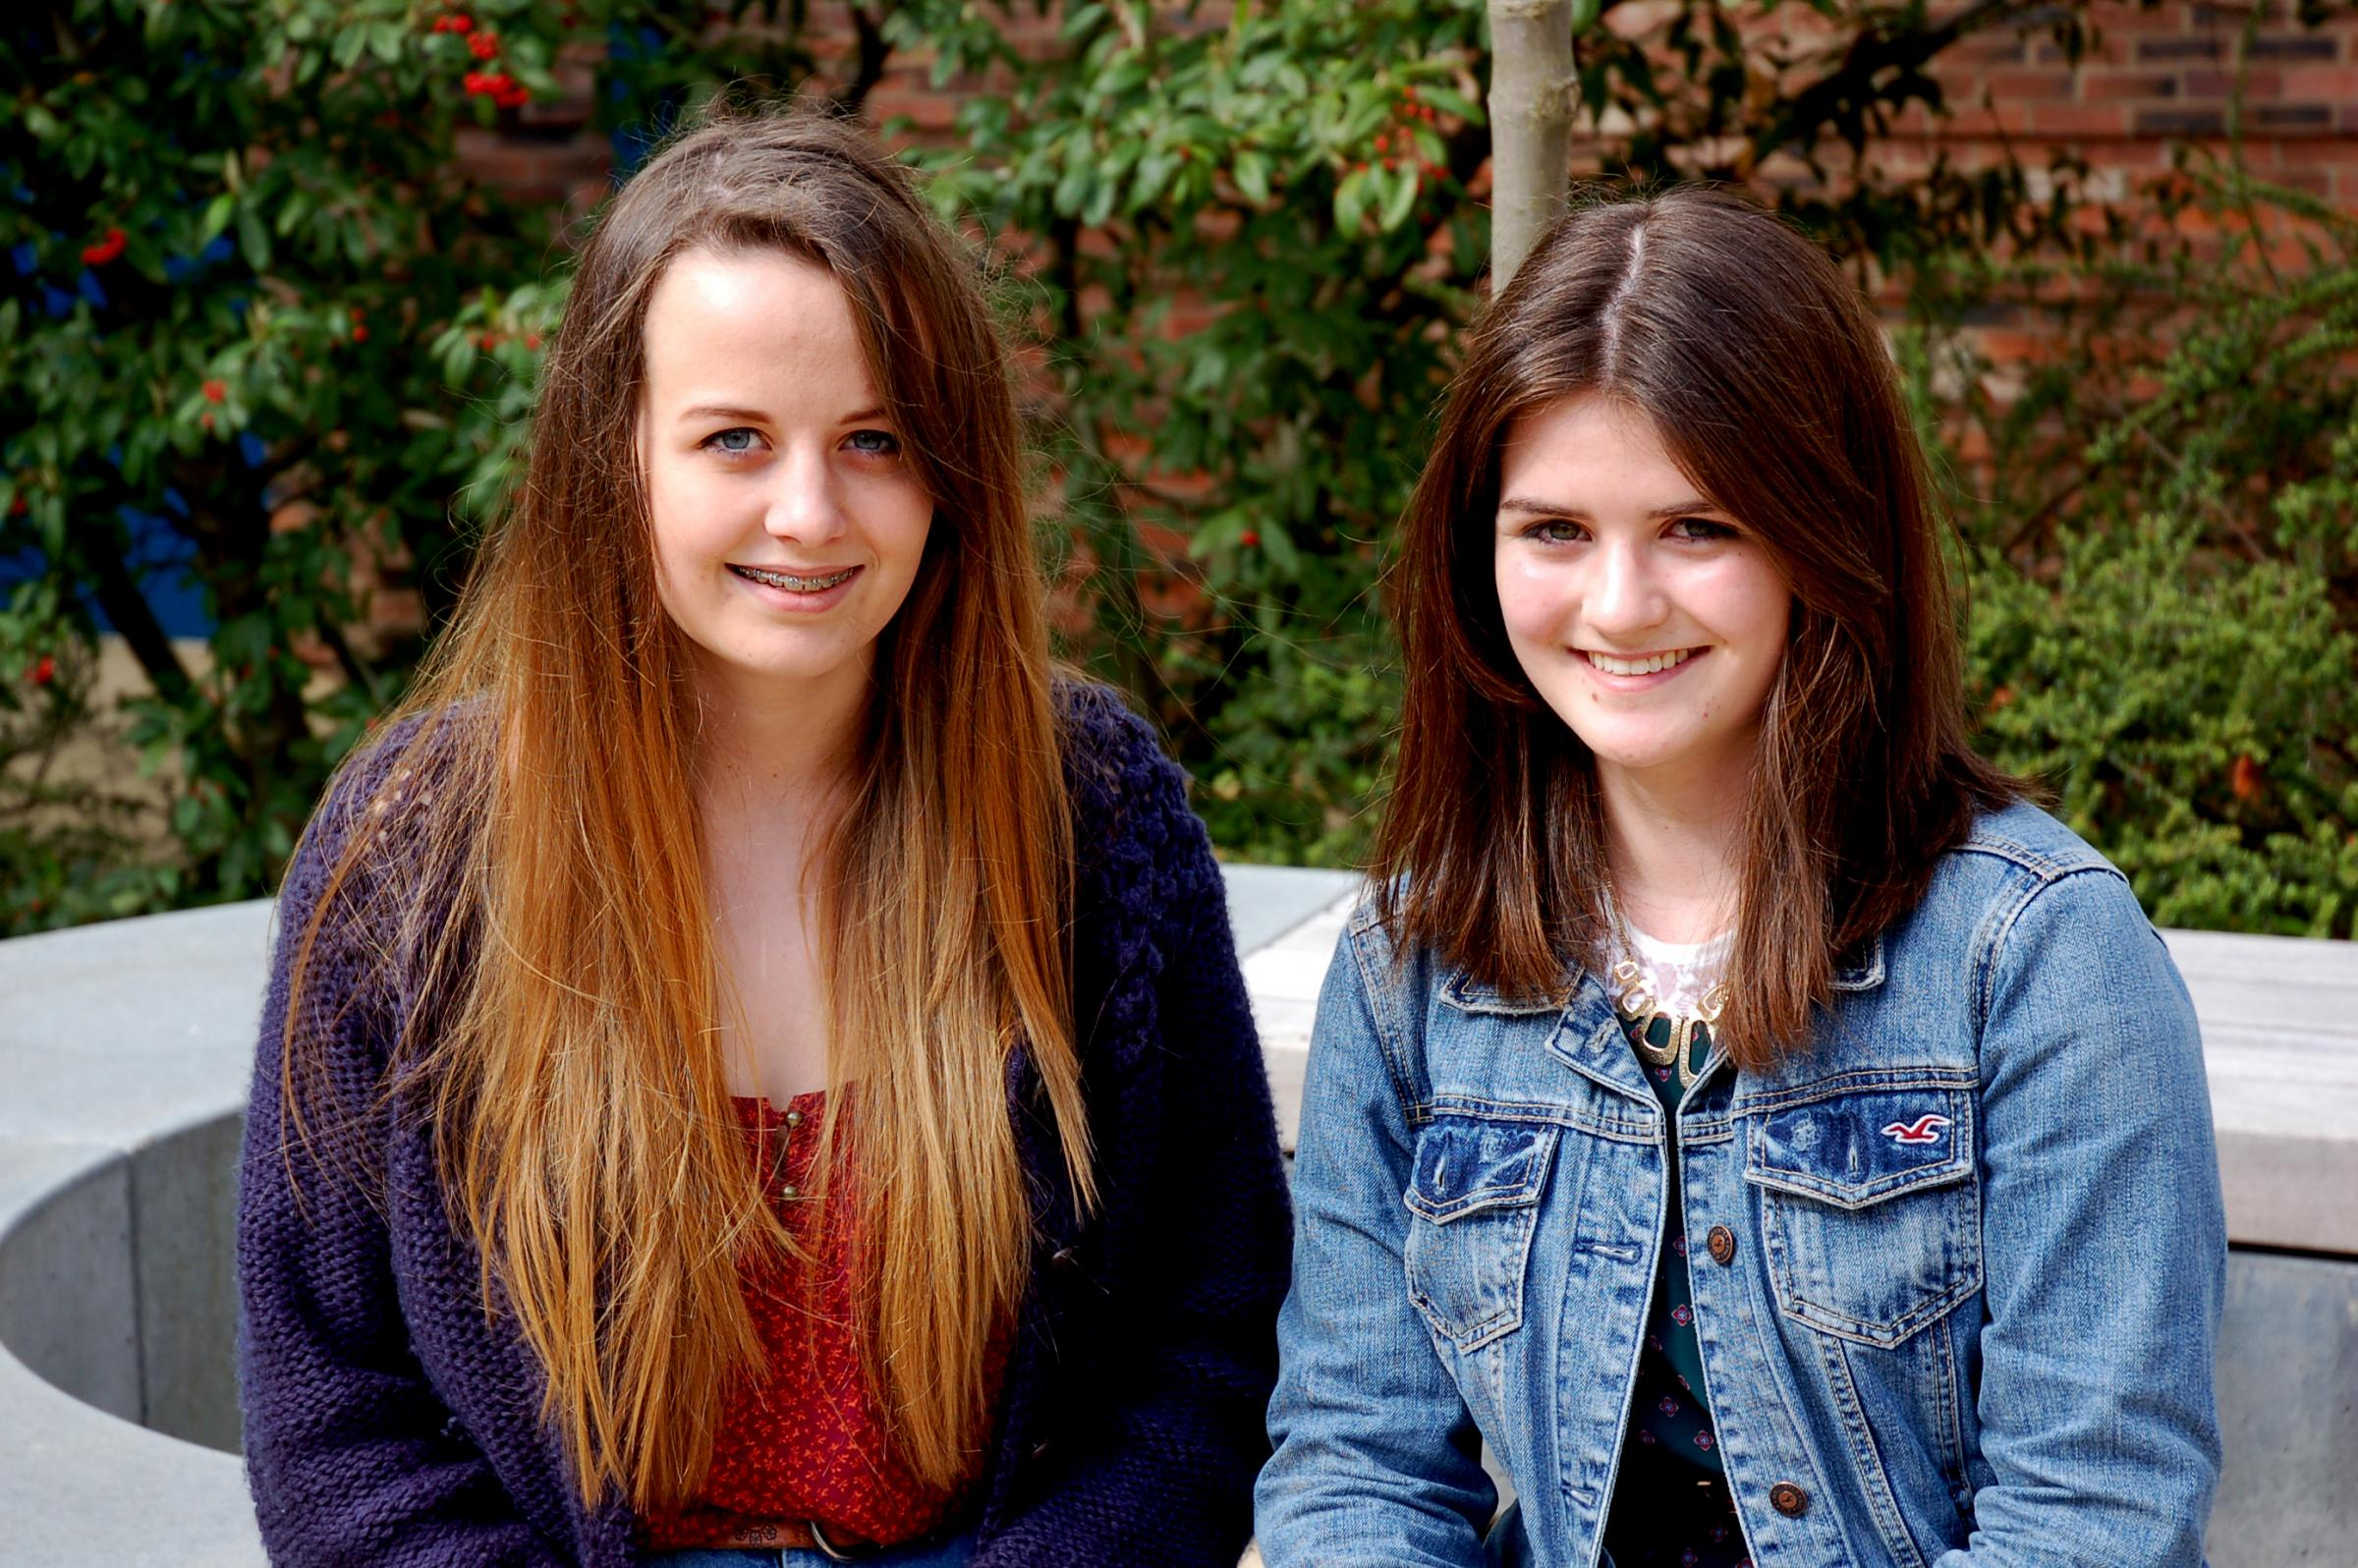 Sarah Sanderson, left, and Esther Farnell, the new vice-president and president of the student association of Queen Elizabeth Sixth Form College, in Darlington.